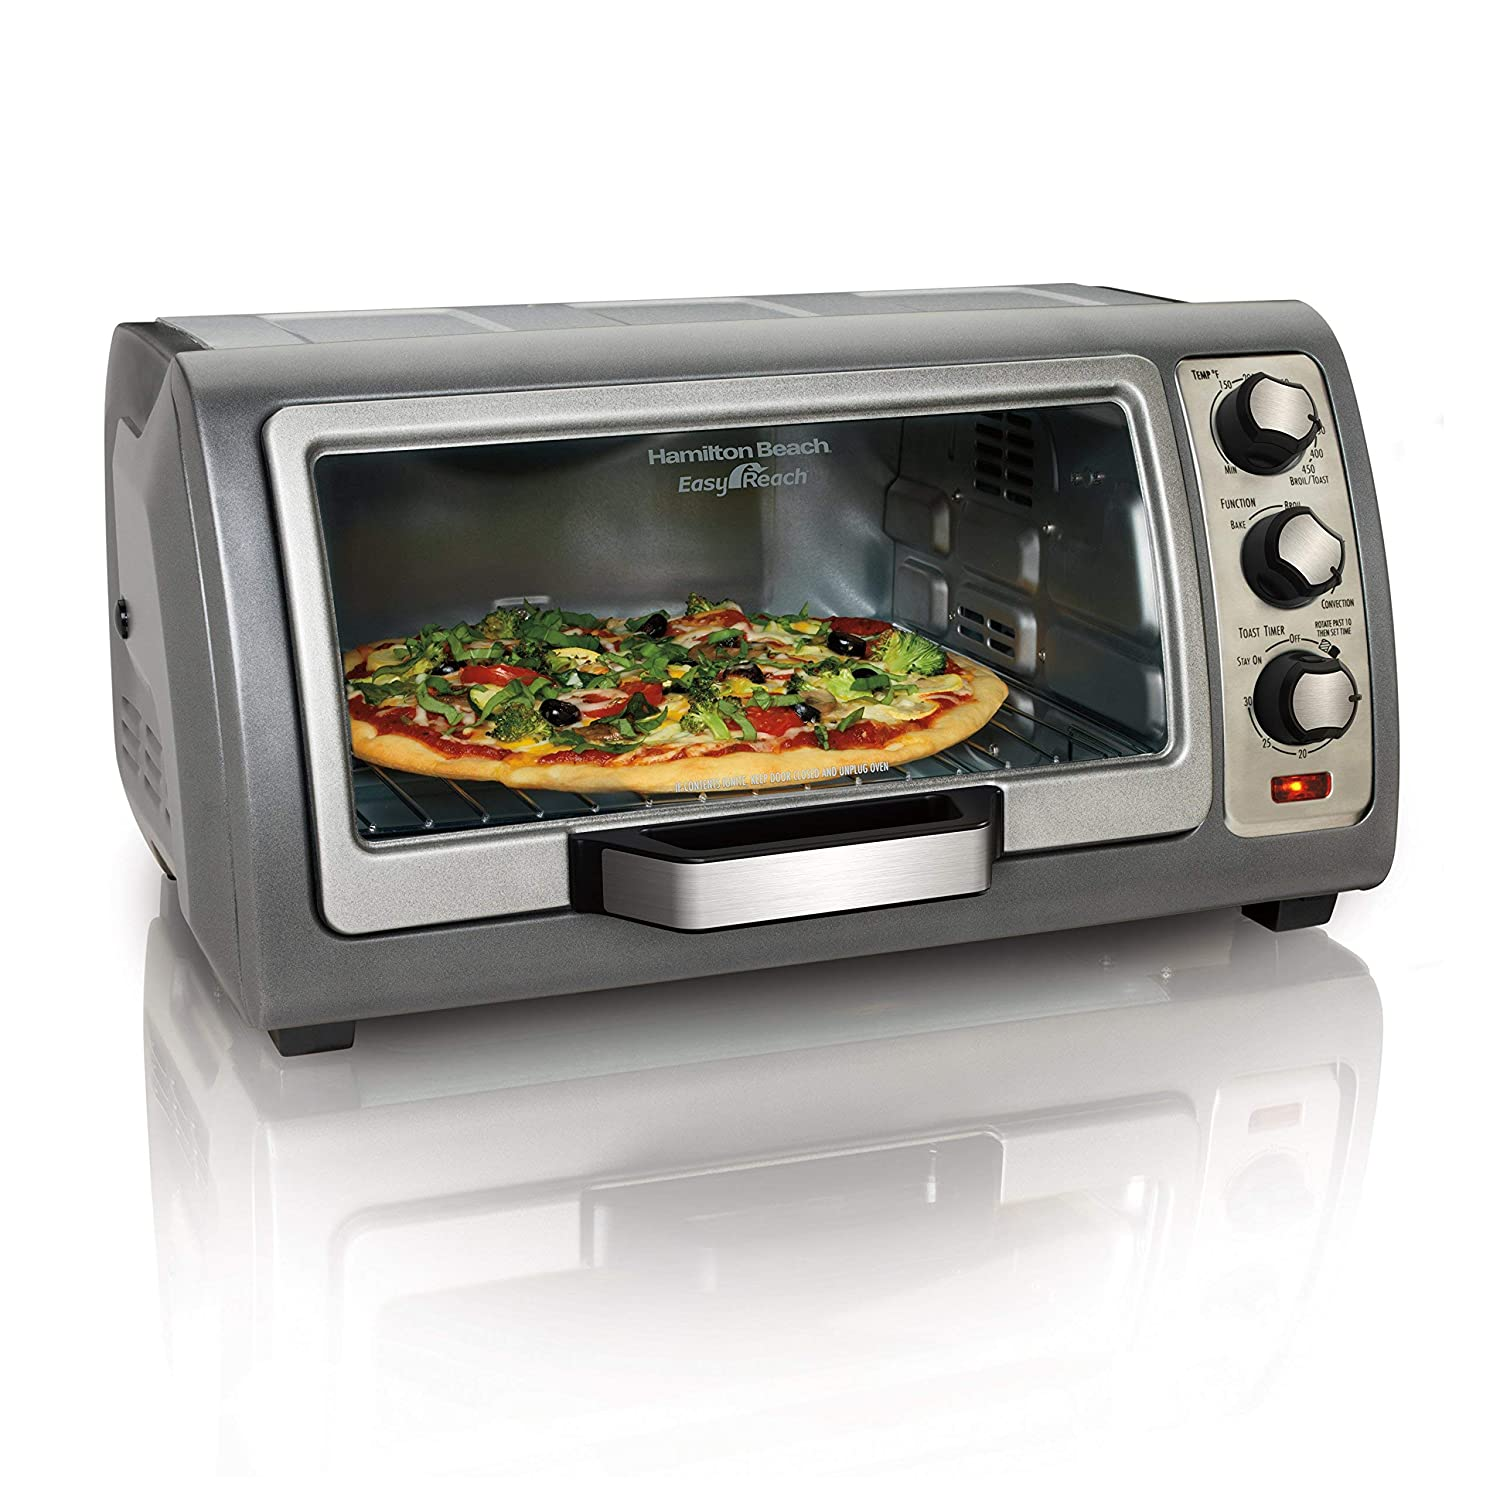 Hamilton Beach (31126) Toaster Oven, Convection Oven, Easy Reach (Certified Refurbished)